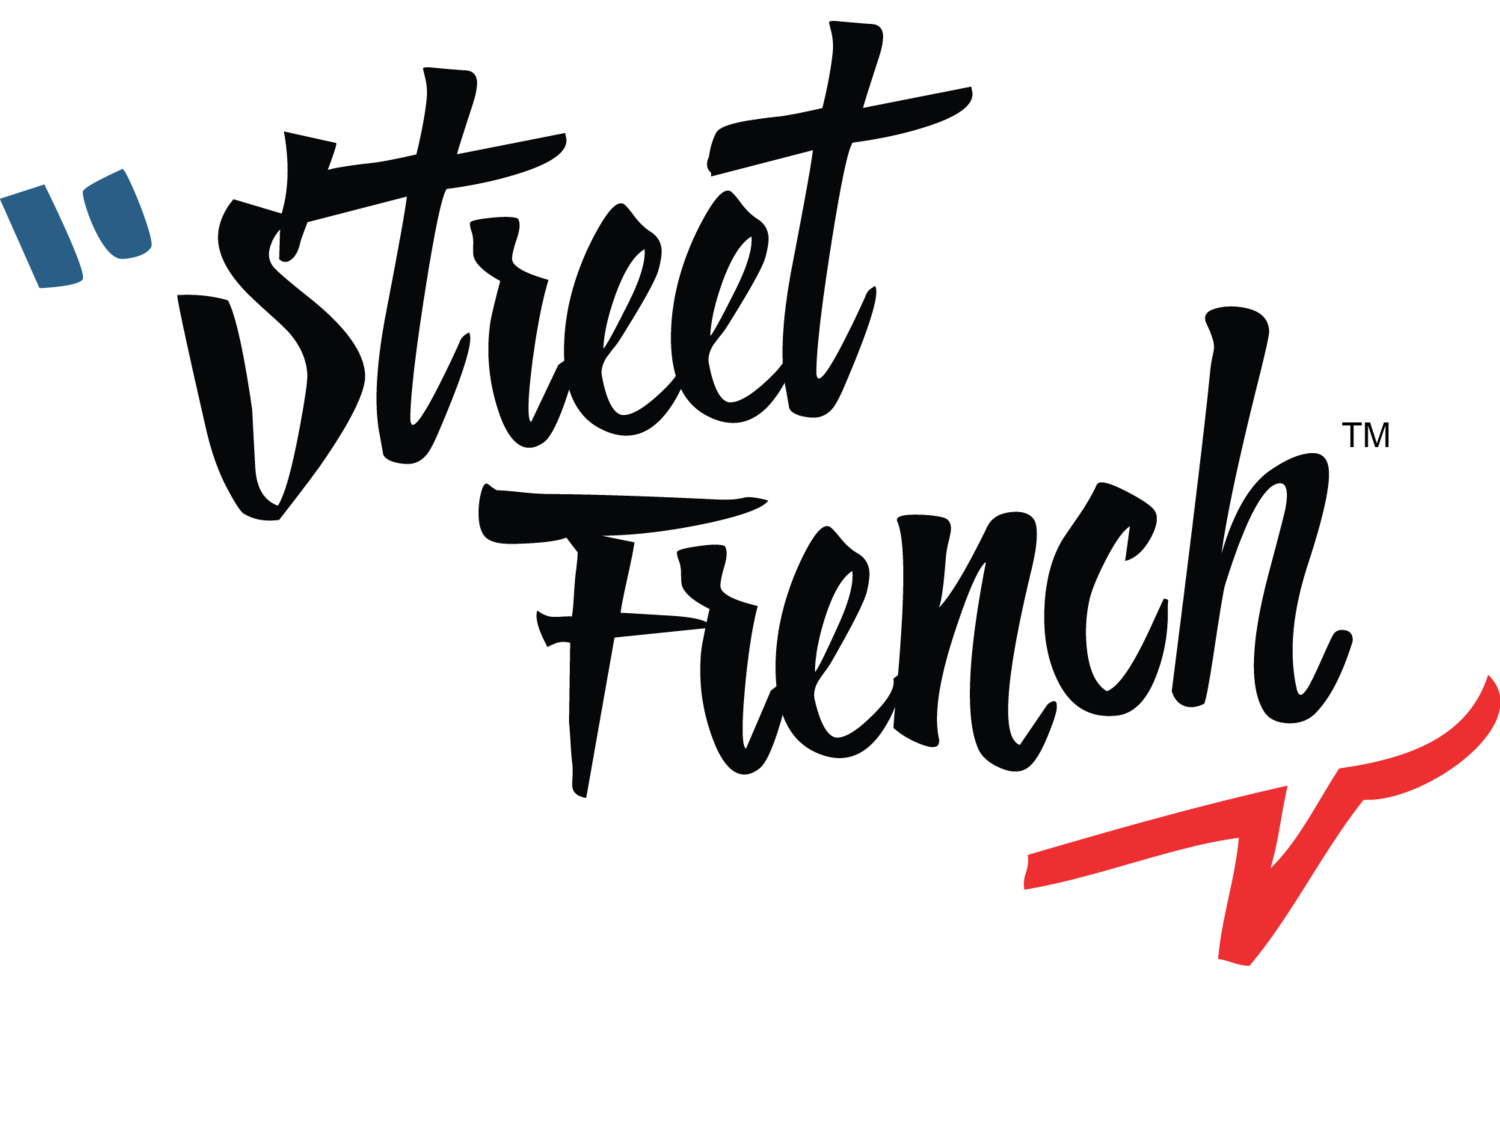 Street french